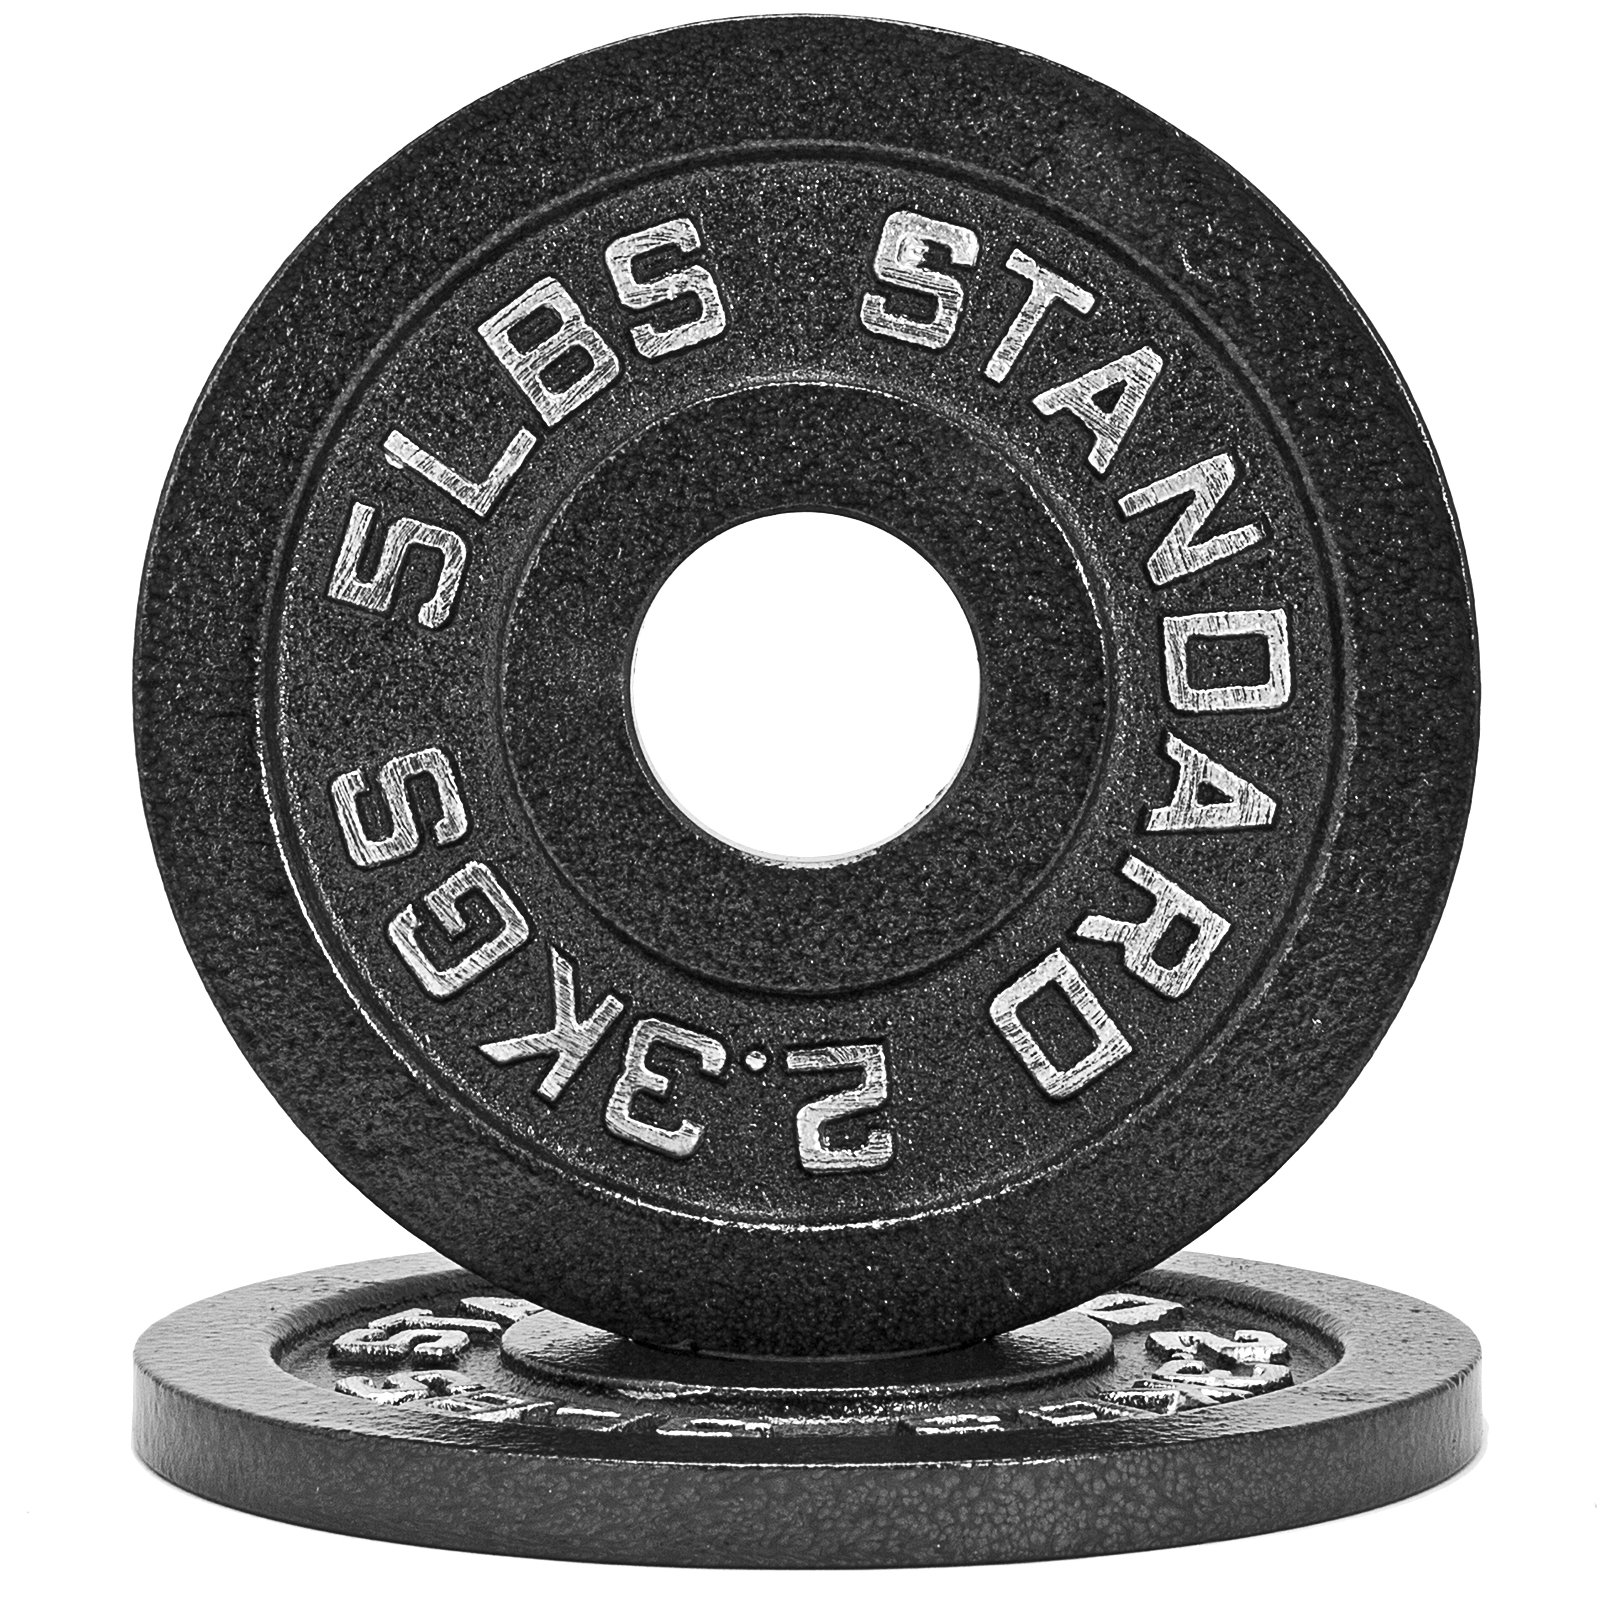 Fringe Sport 1.25lb - 45lb Iron Weight Plate Pairs/Weightlifting, Powerlifting, Other Strength Training Equipment (5)